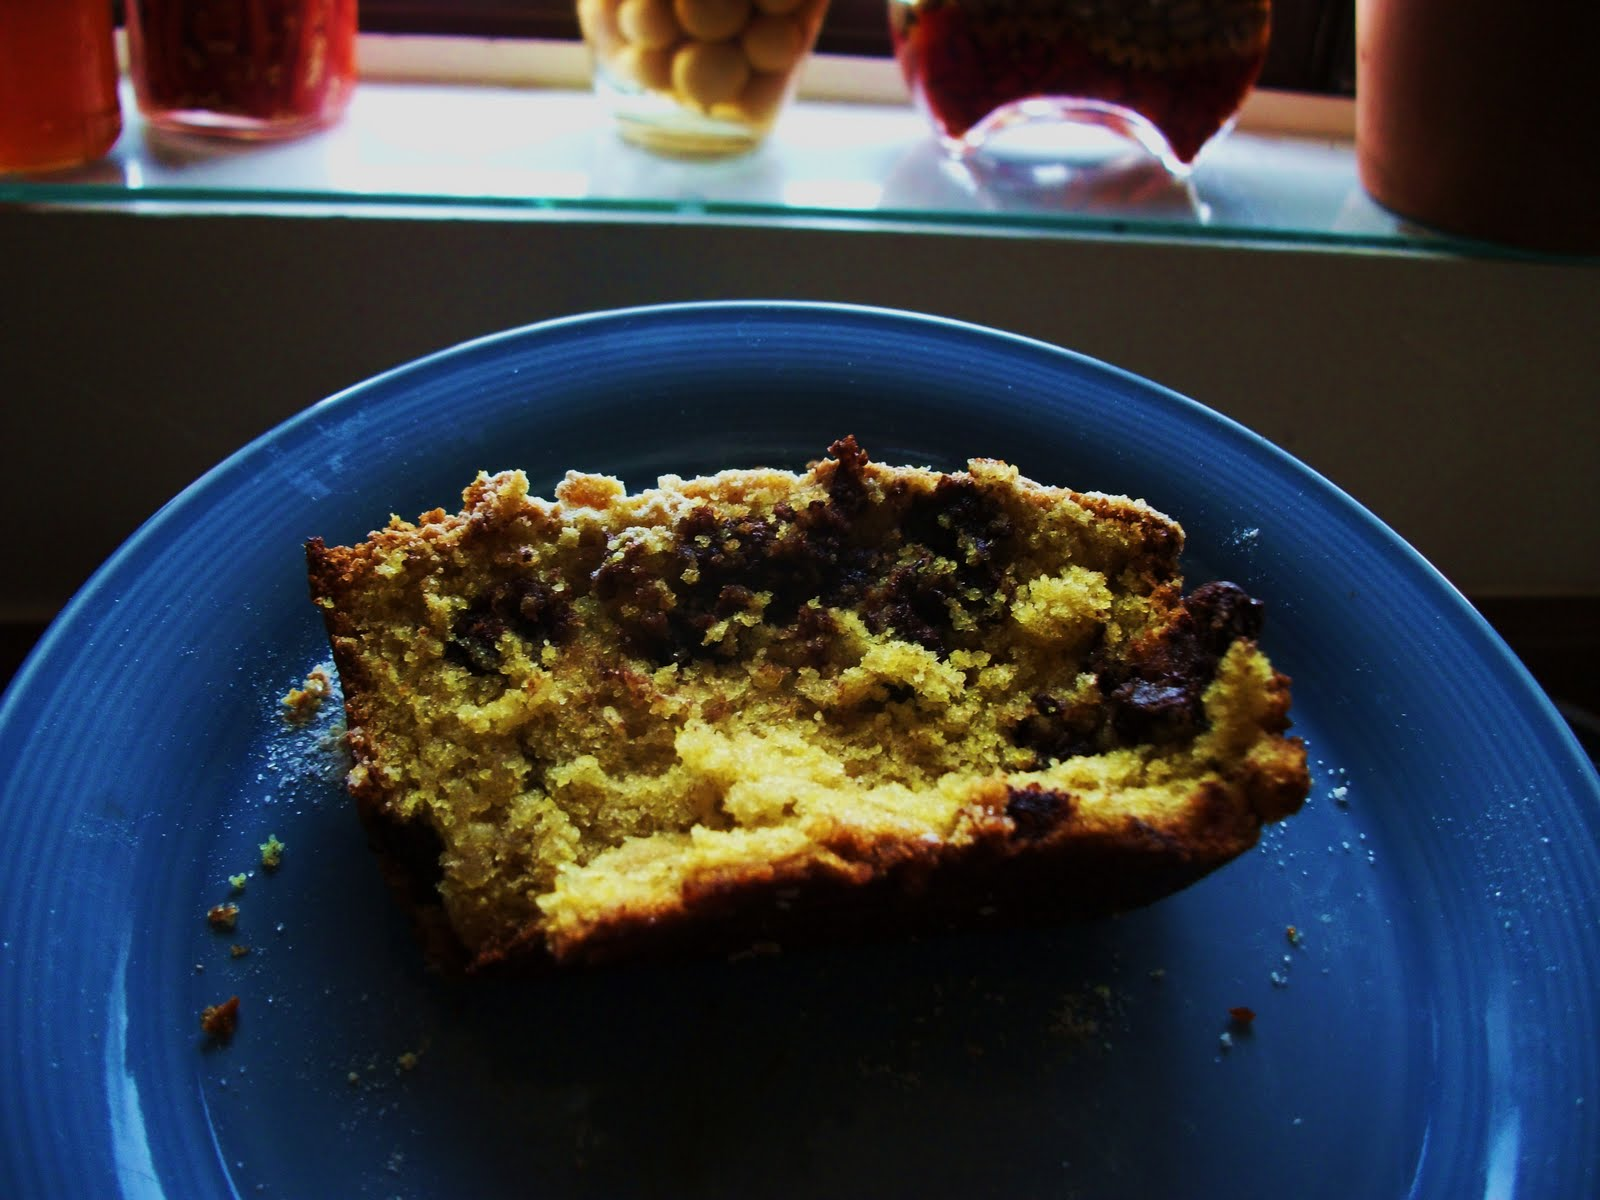 curry banana bread with chocolate chips this bread is astonishing i